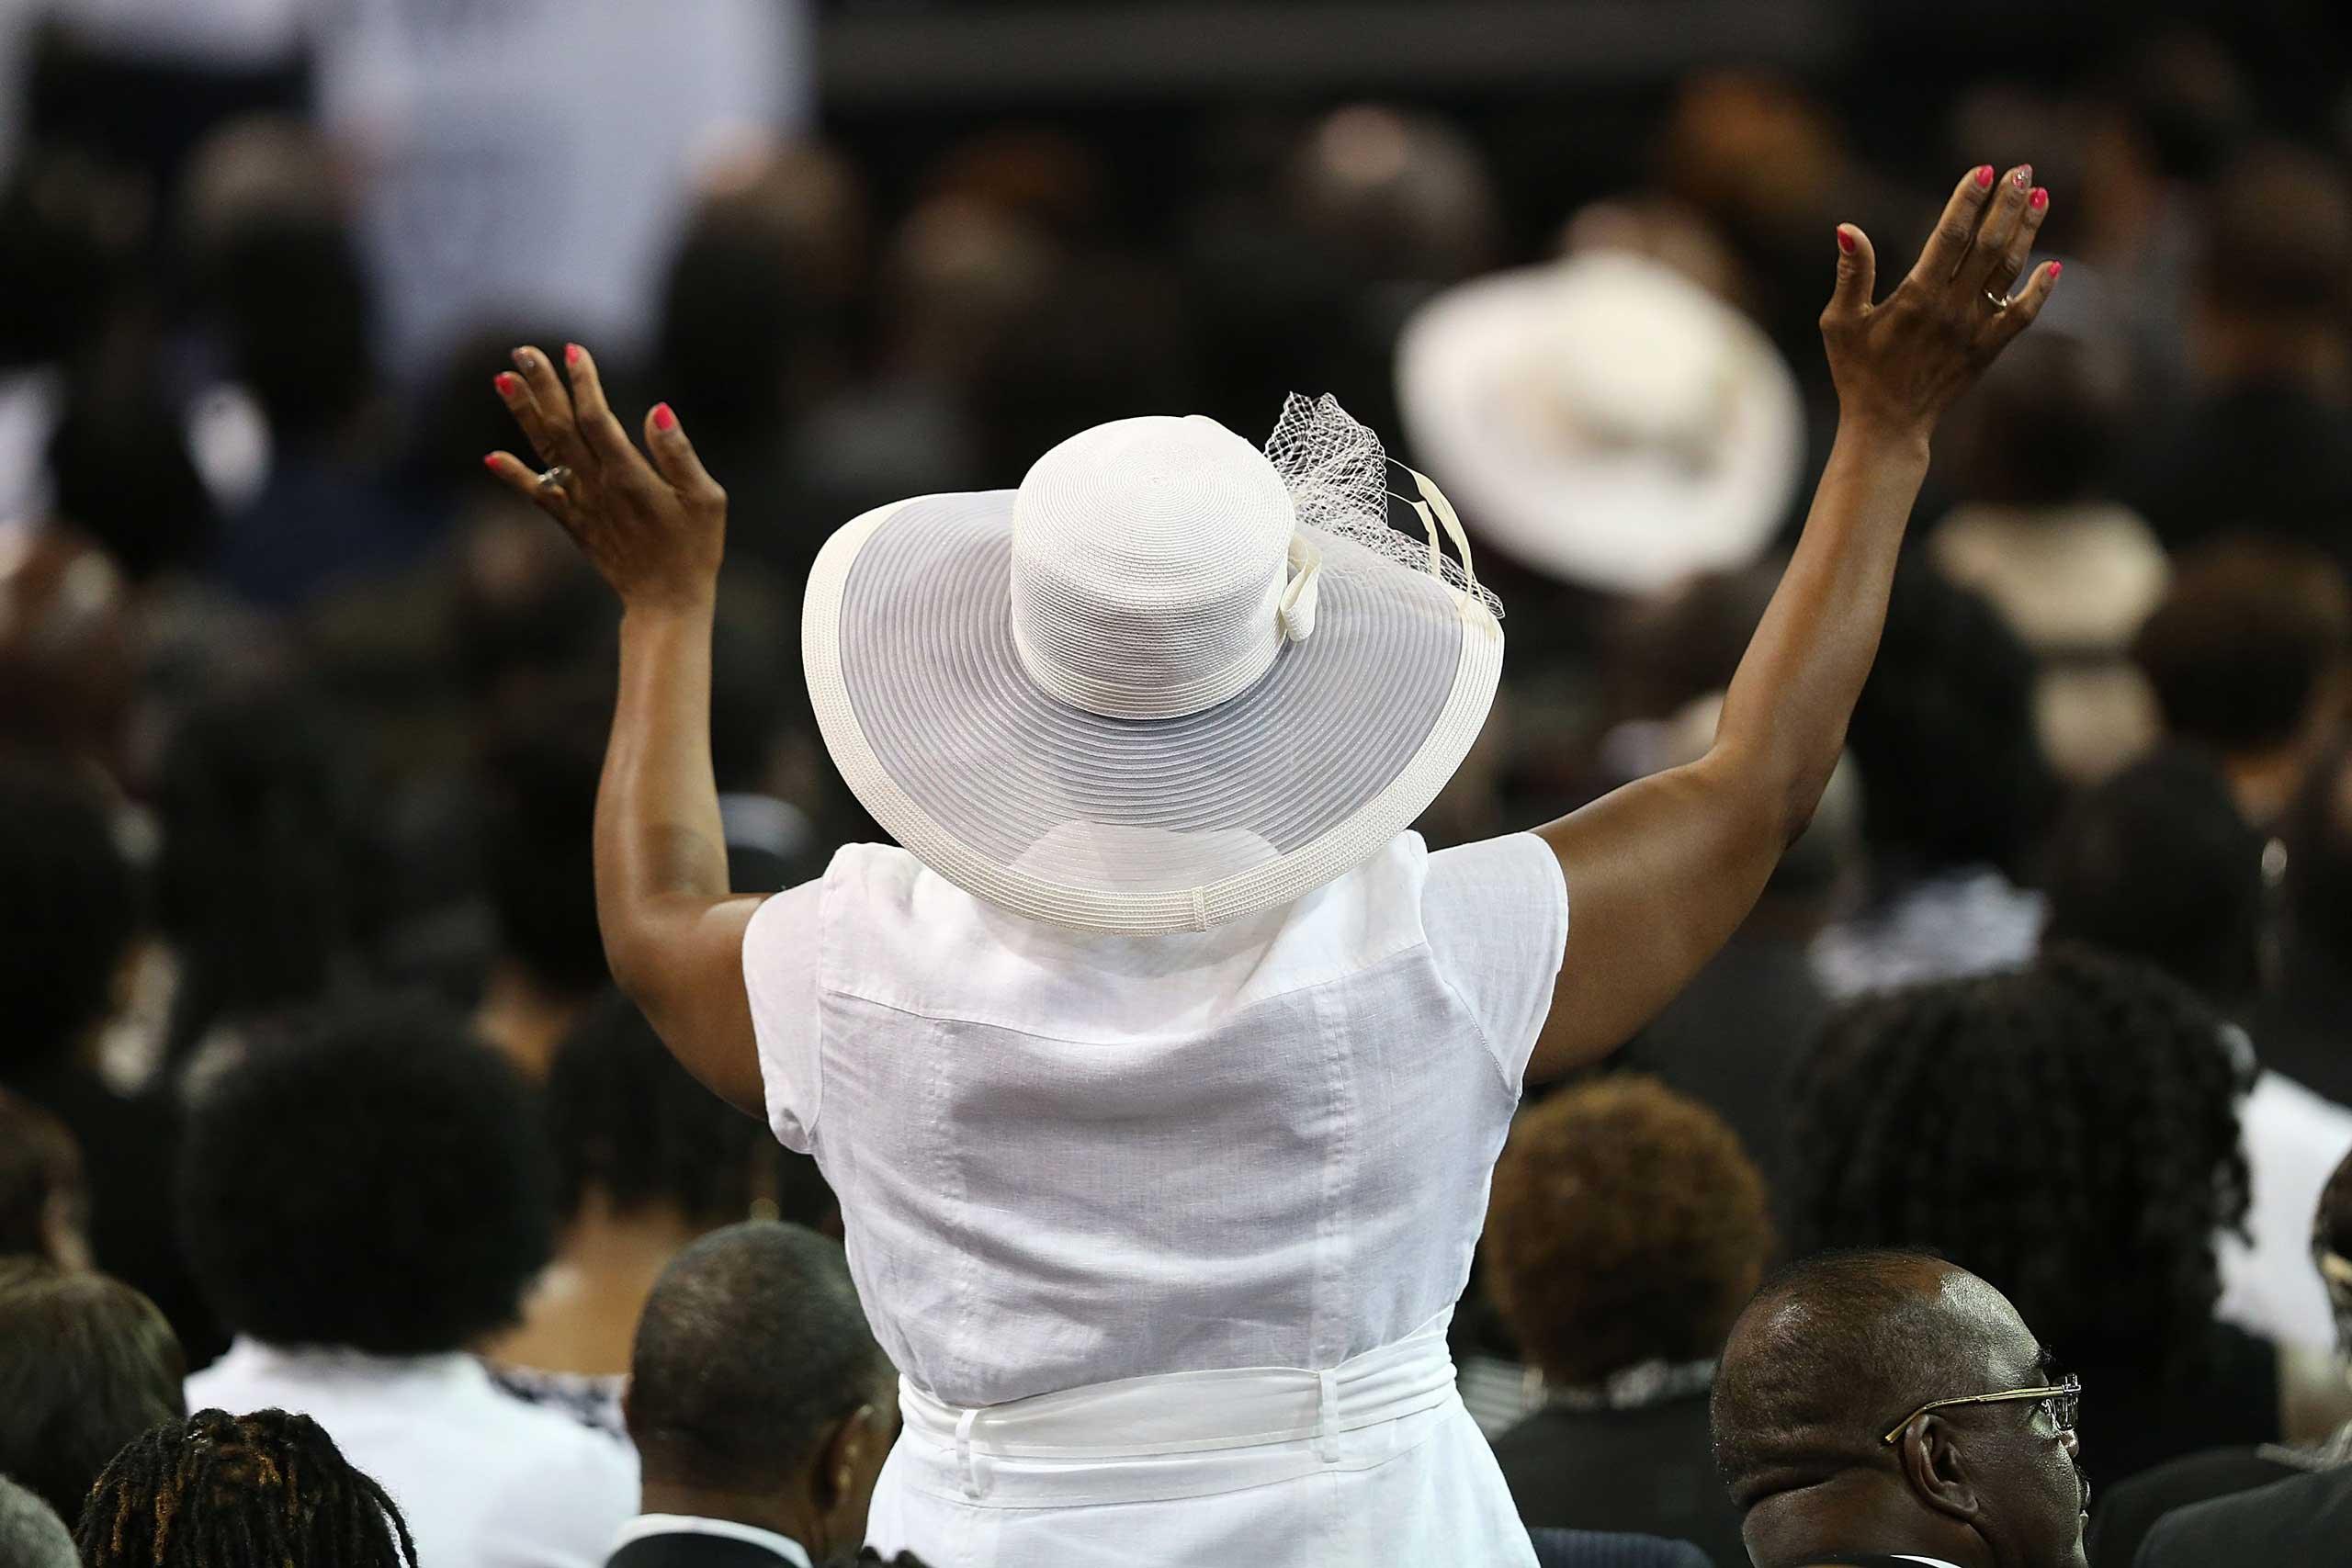 Mourners attend the funeral of Rev. Clementa Pinckney at College of Charleston TD Arena in Charleston, S.C. on June 26, 2015.